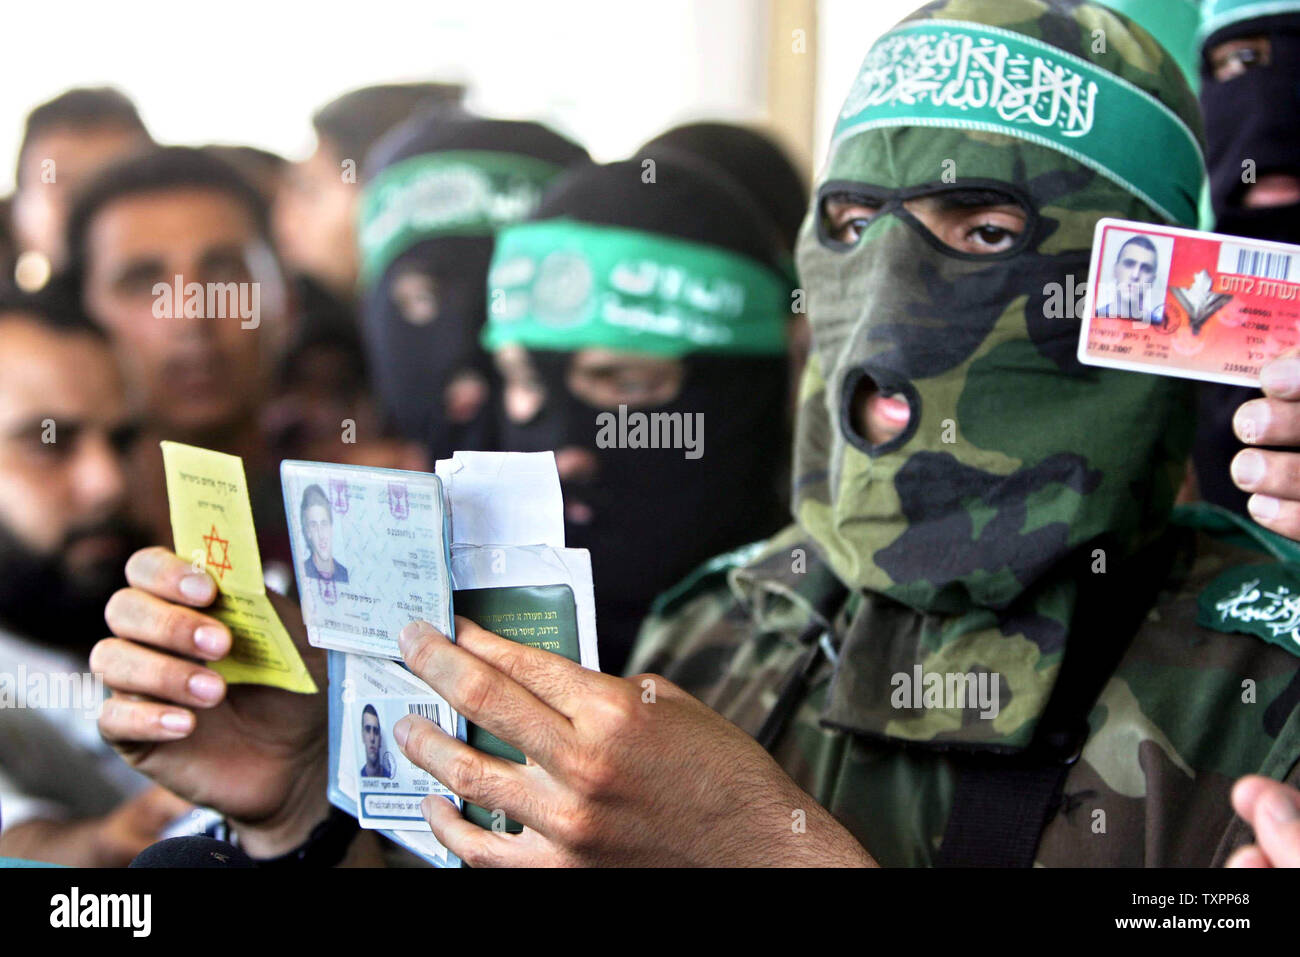 Abu Obayda, the spokesman of the military wing of Hamas the Ezz El-Deen Al-Qassam Brigades, displays the ID cards of Israeli soldiers left them behind when Israeli tanks withdrew in Beit Lahia, northern Gaza, on July 8, 2006. According to sources, Israel has pulled out its forces from the town of Beit Lahia following the death of 35 Palestinians and one Israeli soldier since Israel launched a large scale military operation in Gaza this week aimed at preventing rocket attacks and securing the release of a captured soldier.  (UPI Photo/Ismael Mohamad) - Stock Image